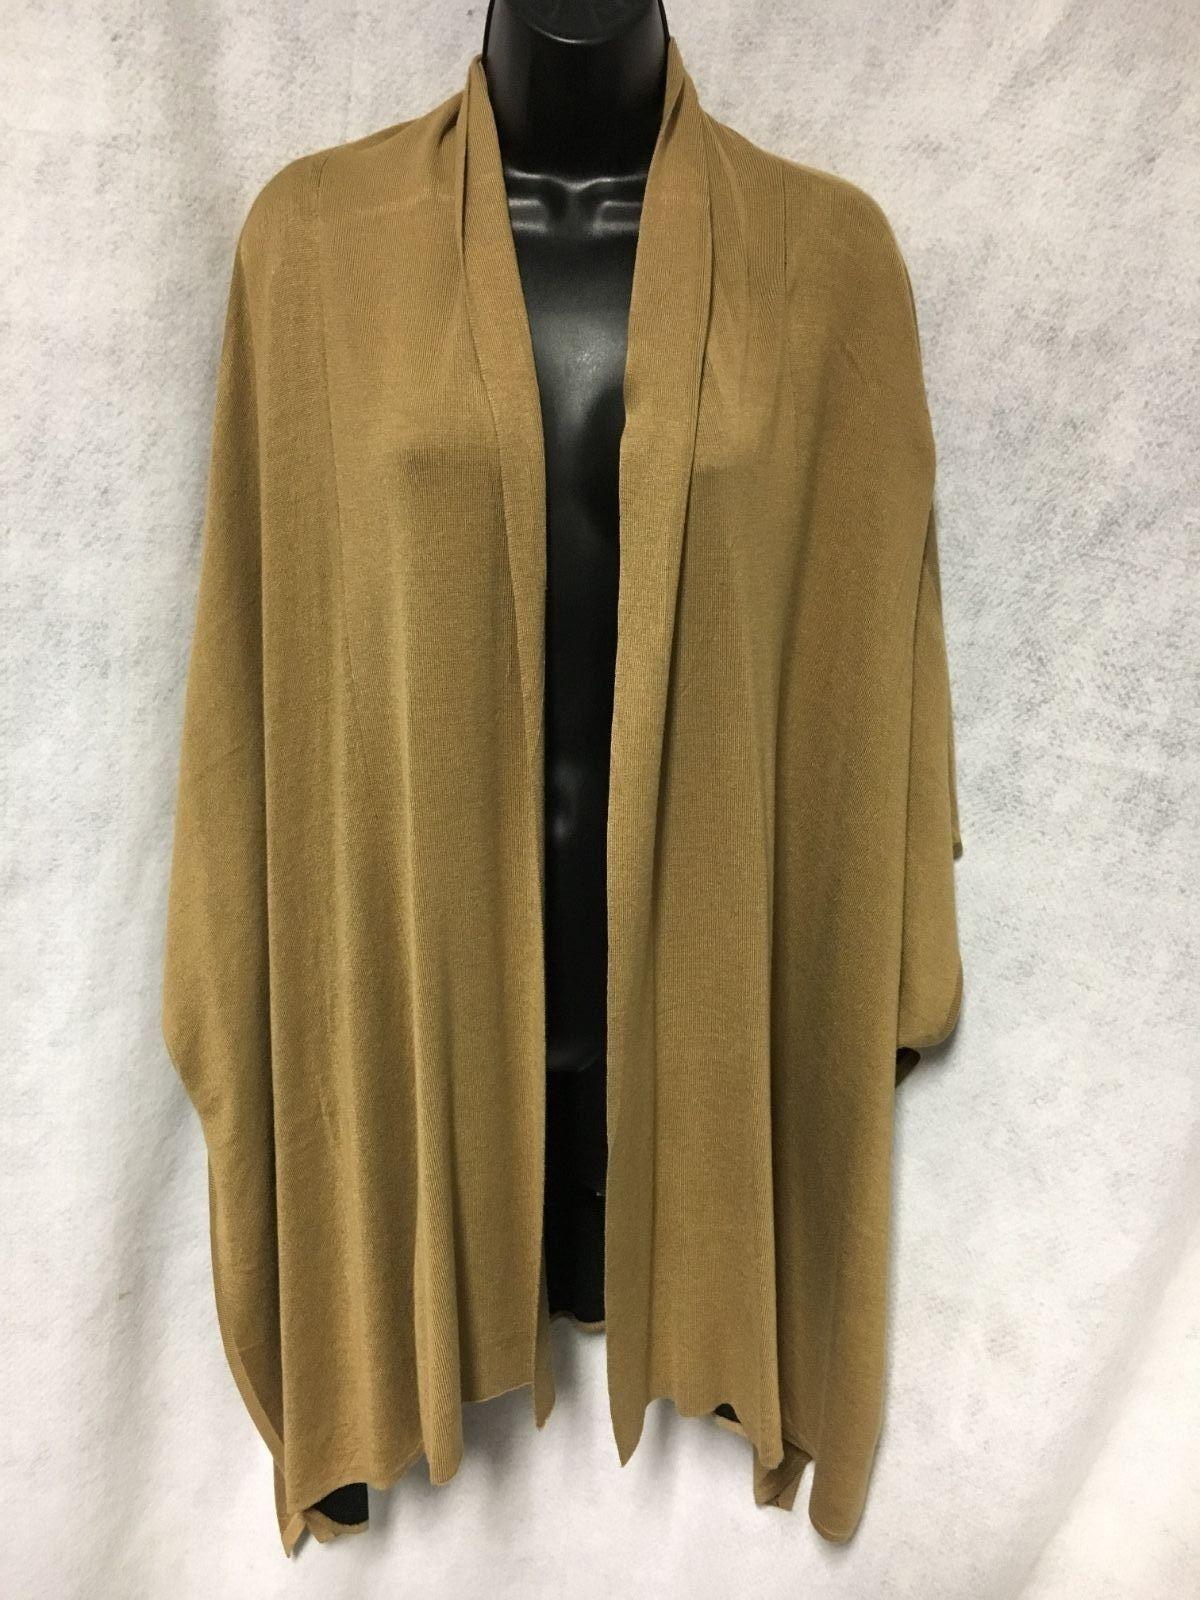 Avette Beautiful Camel Ruana Cape NWT Size S/M MSRP $129